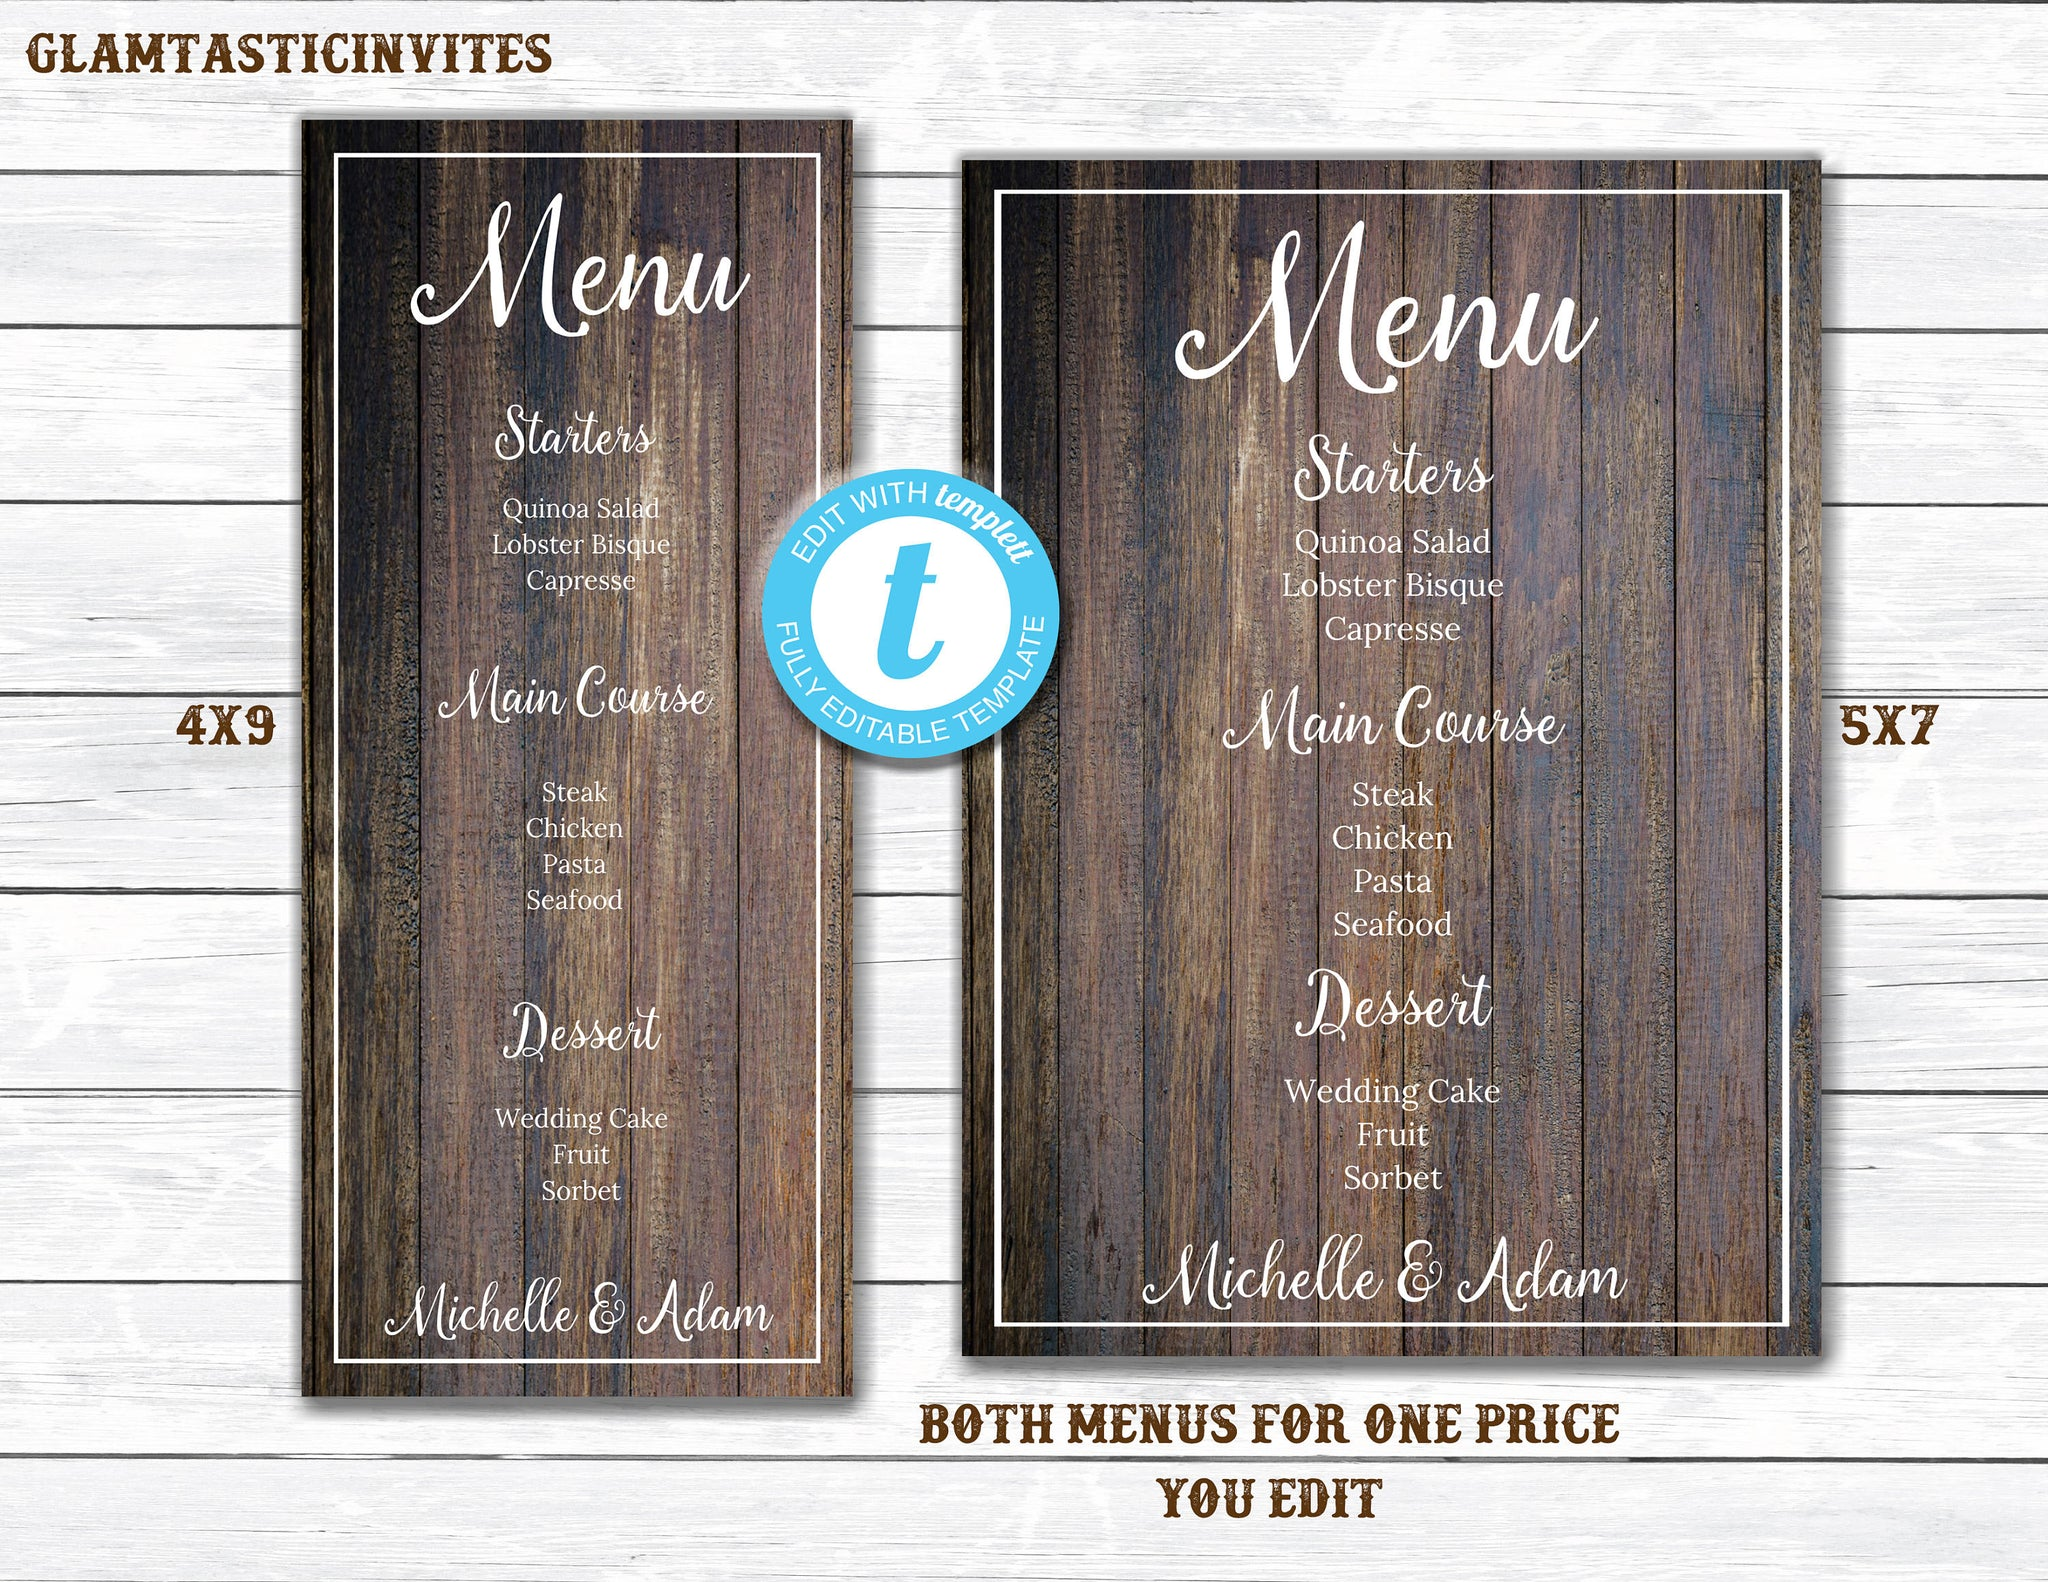 wedding menu template 5x7 menu 4x9 menu wedding menu. Black Bedroom Furniture Sets. Home Design Ideas